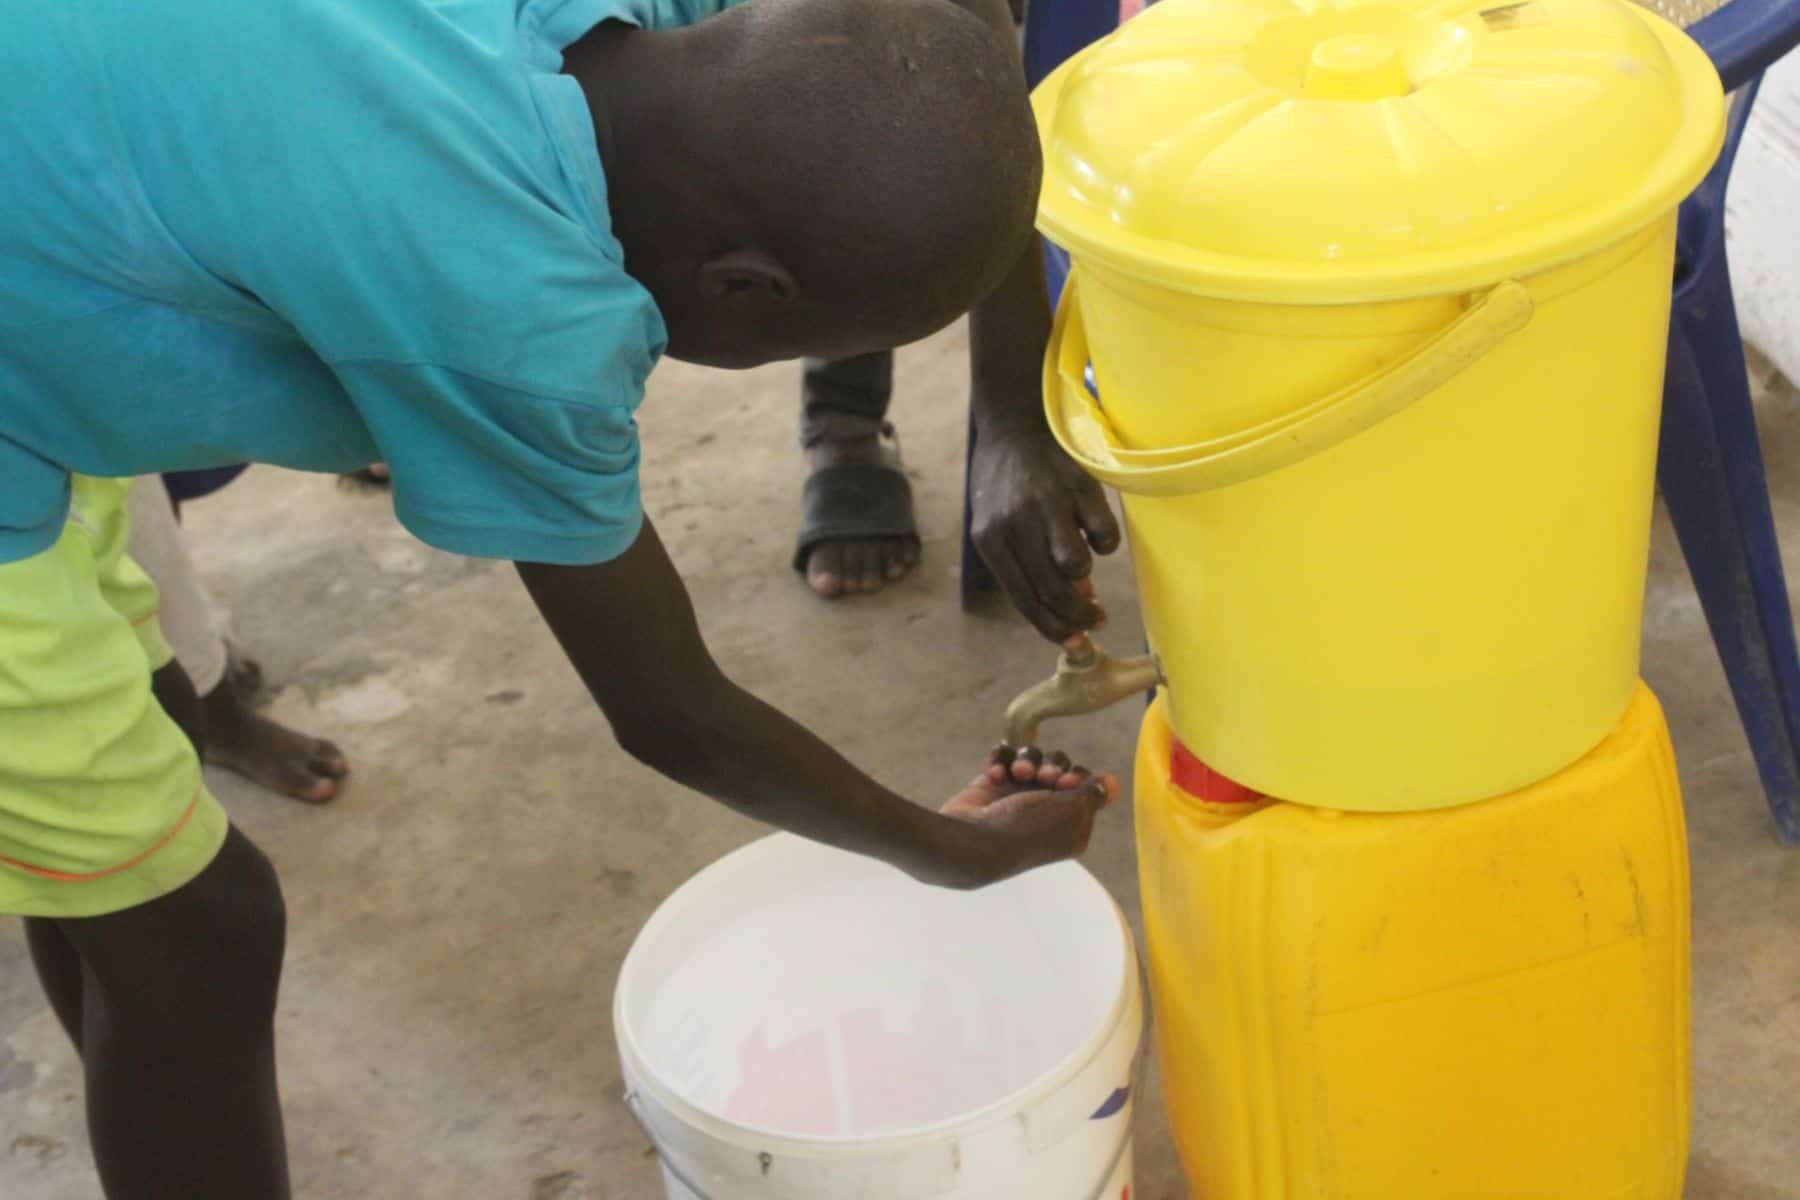 Our partners make sure the boys have masks, handwashing stations, soap, and sanitizer to guard against COVID-19.